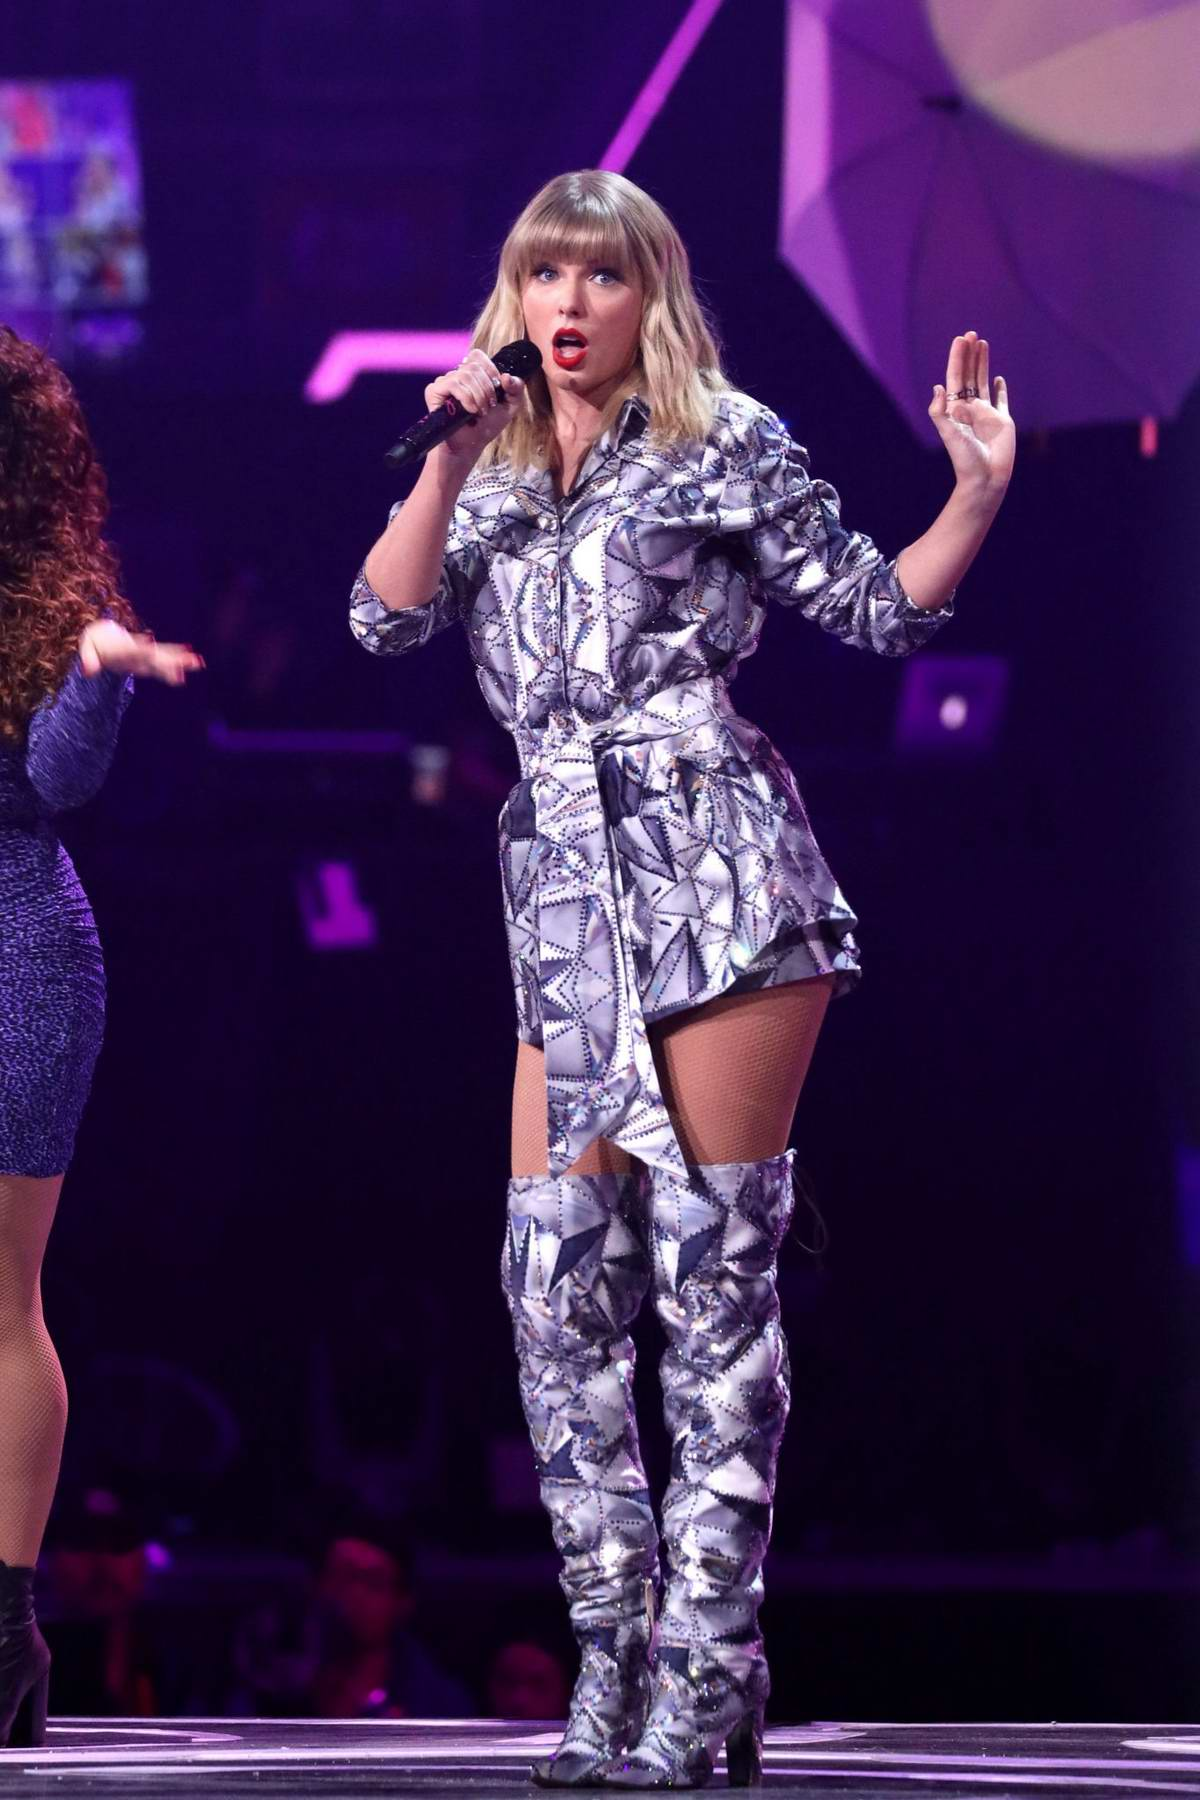 Taylor Swift performs on stage during the Gala of Alibaba at Mercedes-Benz Arena in Shanghai, China